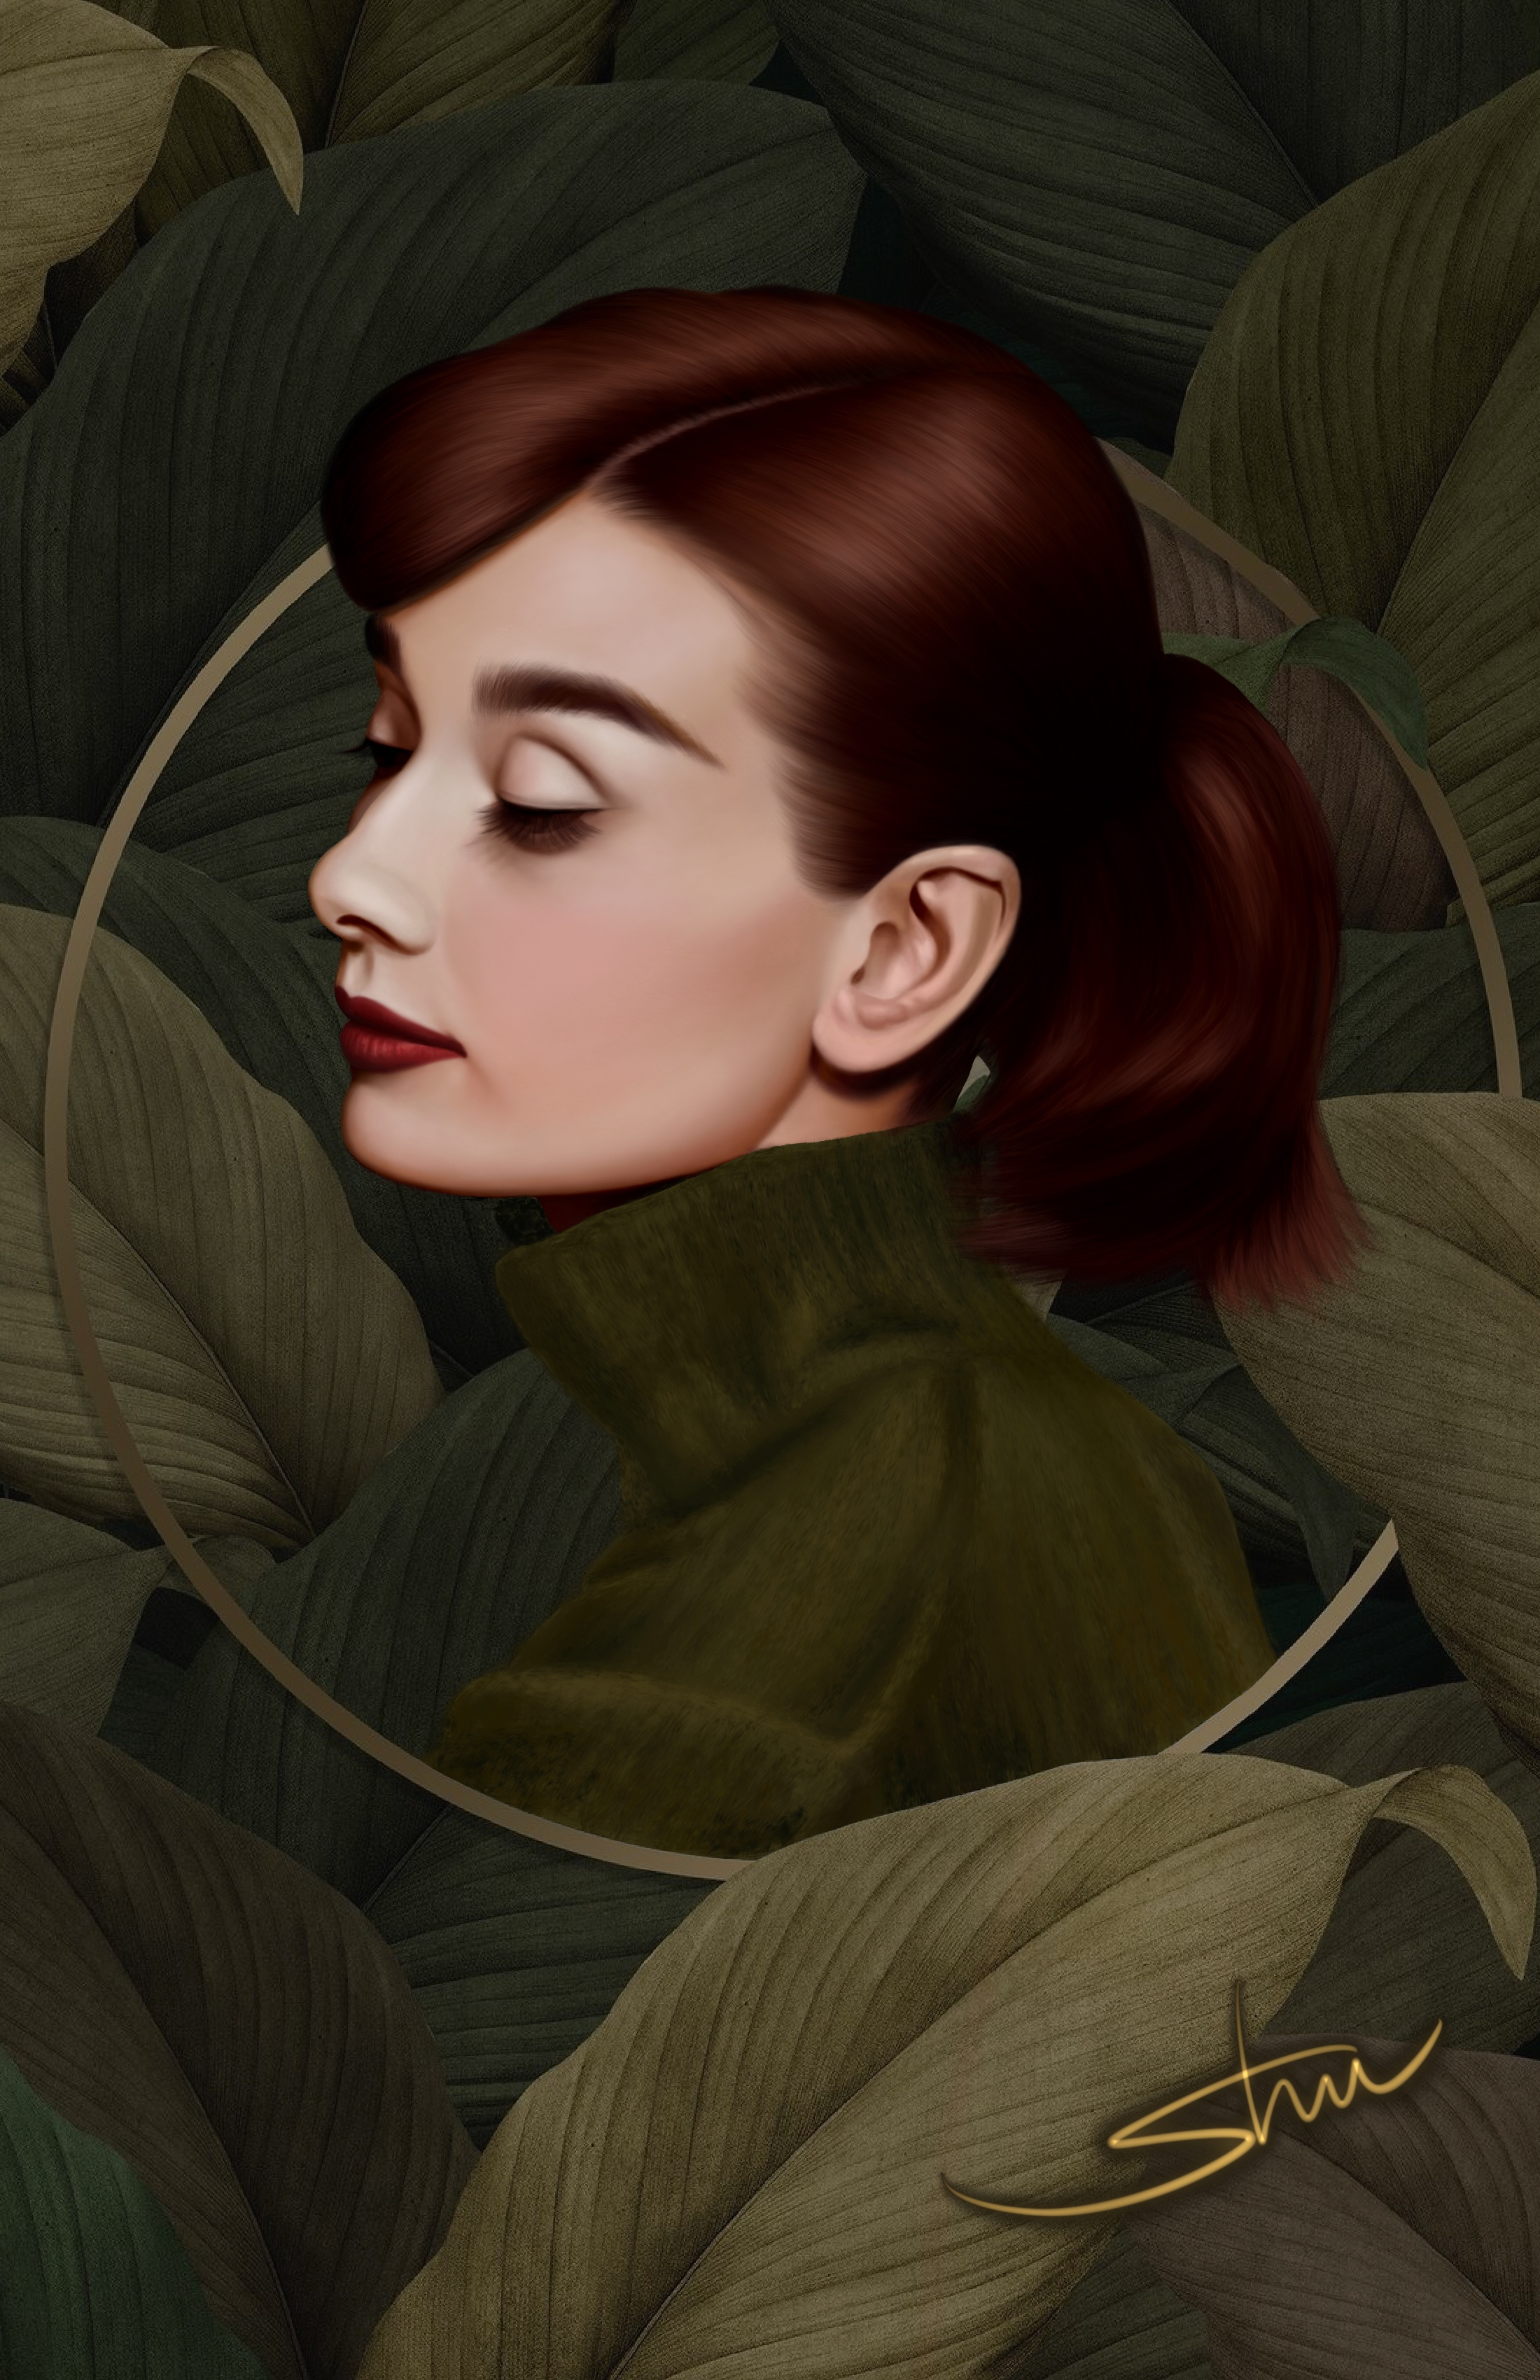 Digital Drawing of Audrey Hepburn